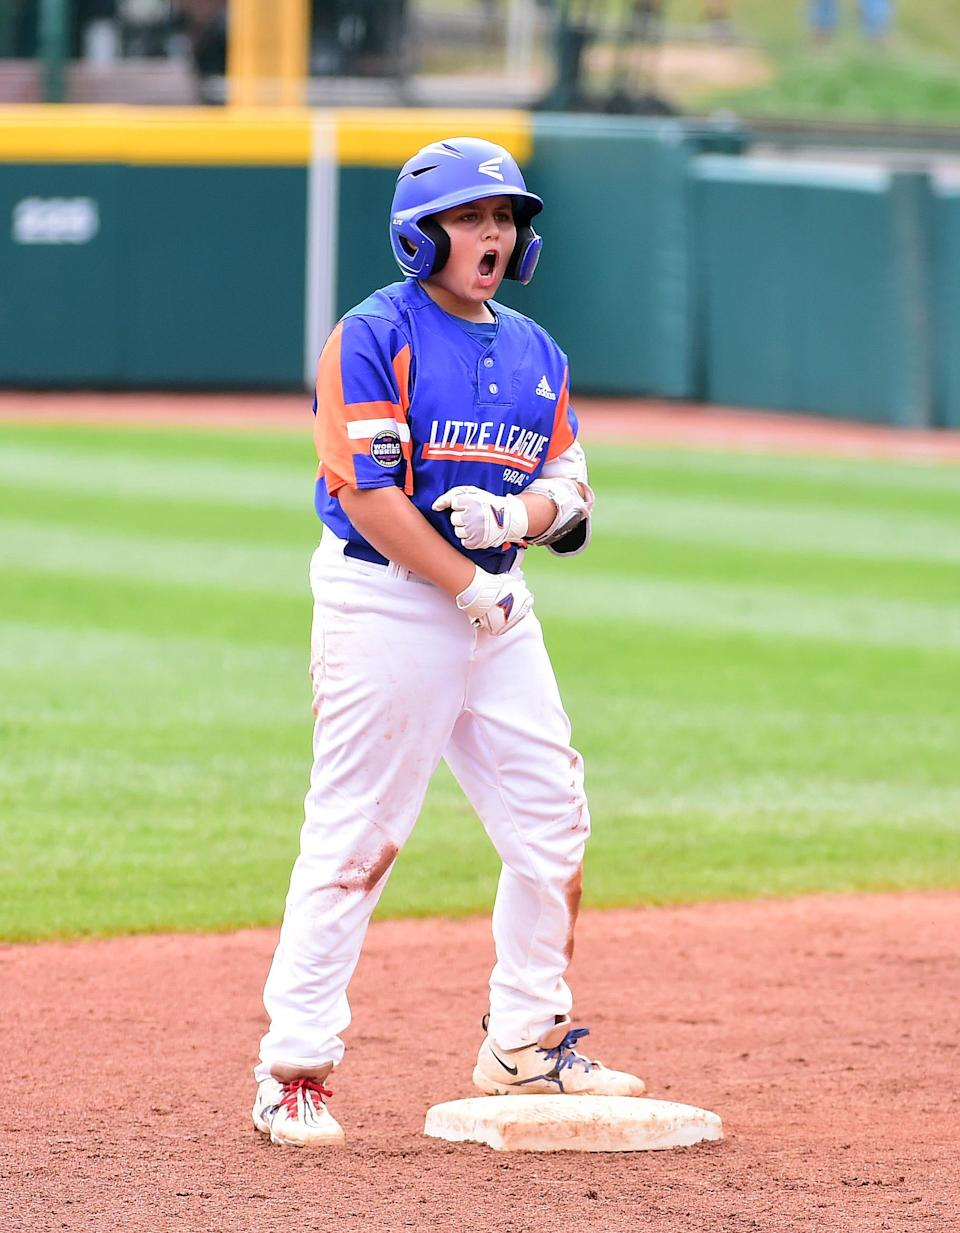 Aug 29, 2021; Williamsport, PA, USA; Great Lakes Region (Michigan) third baseman Jackson Surma (22) reacts after hitting a two run double in the first inning against Great Lakes Region (Ohio) during the Little League World Series Championship game at Howard J. Lamade Stadium. Mandatory Credit: Evan Habeeb-USA TODAY Sports